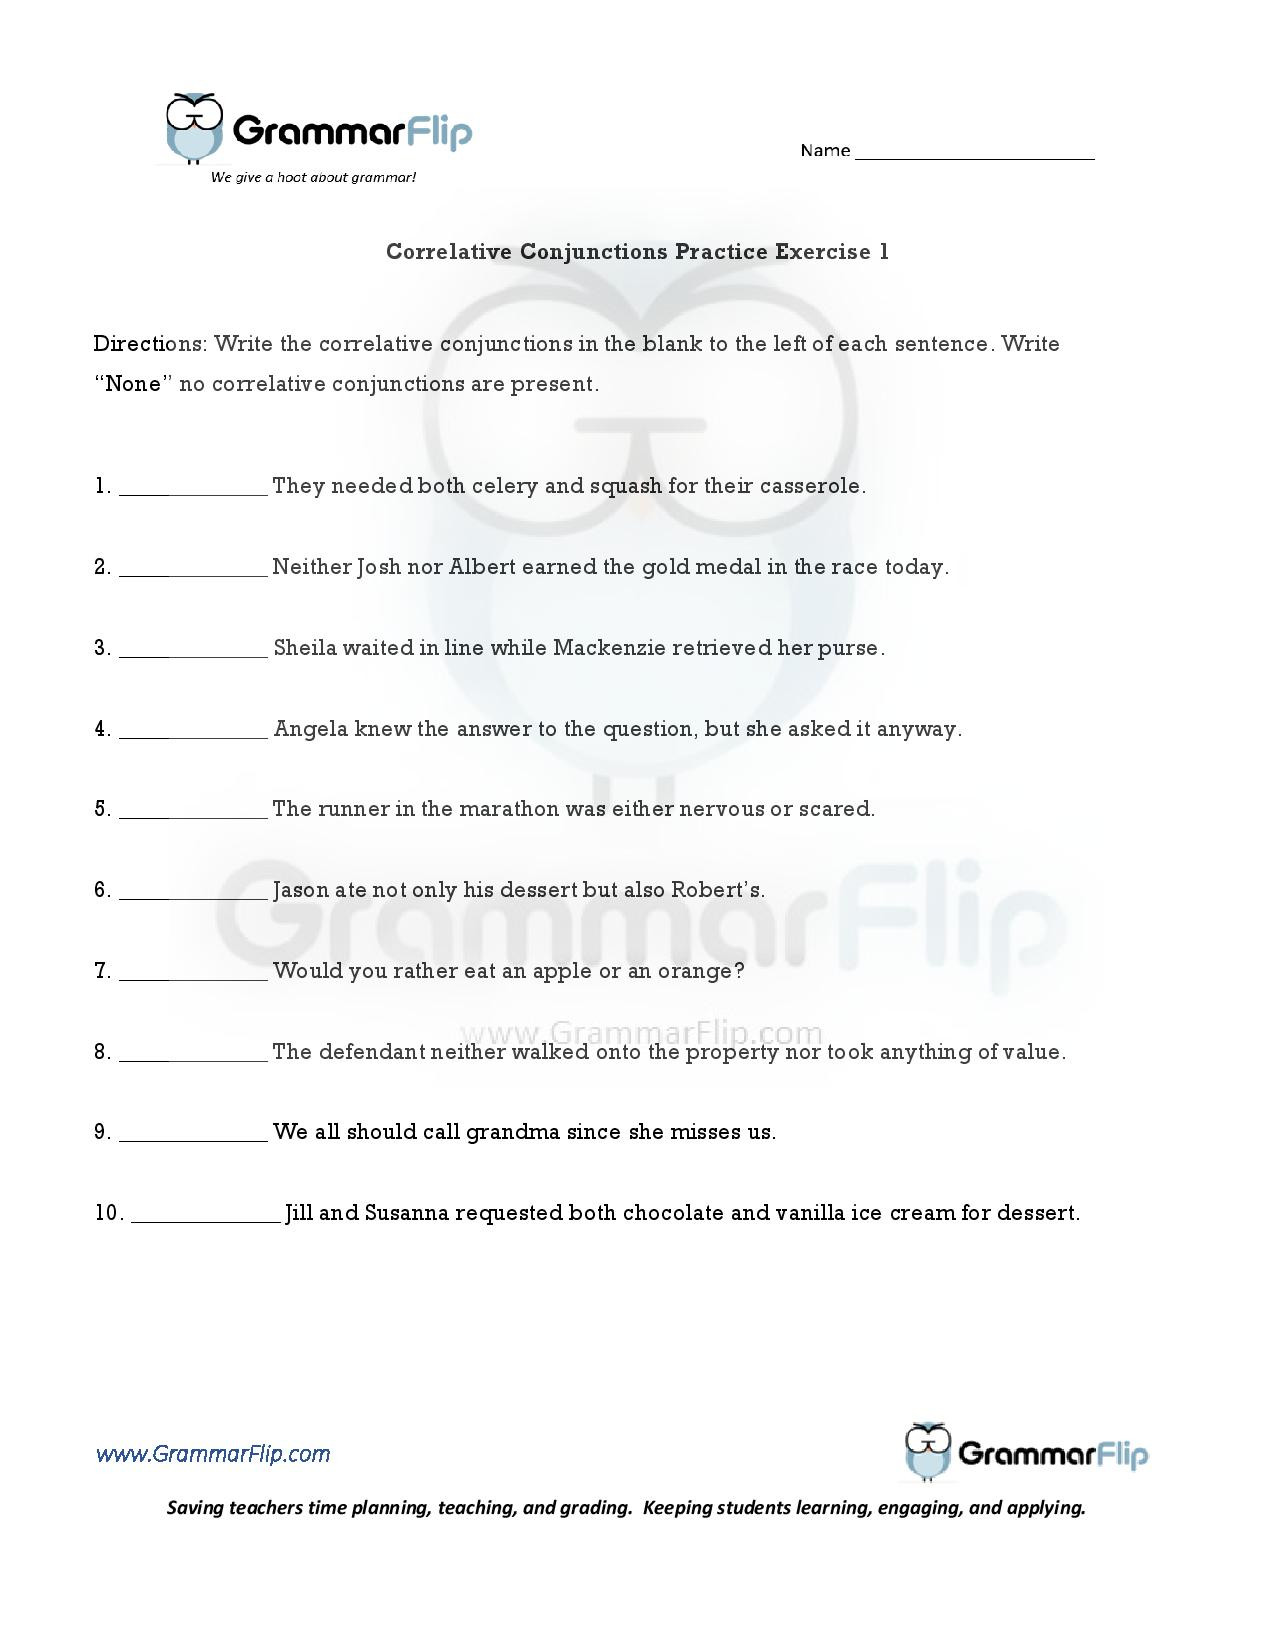 Correlative Conjunctions Worksheet 5th Grade Worksheets